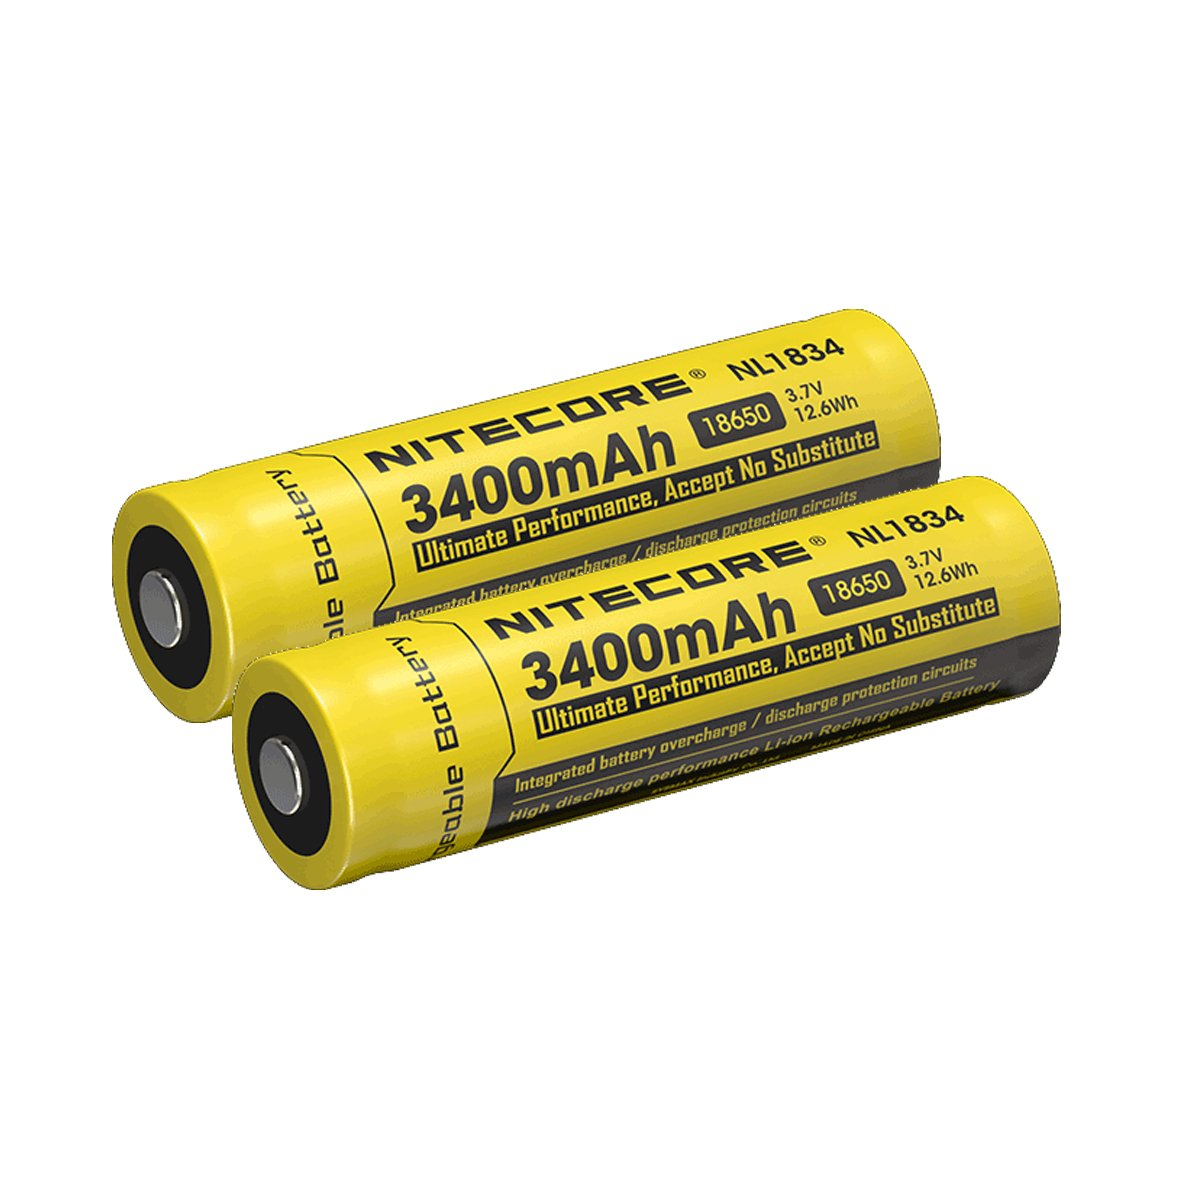 TWO Nitecore NL1834 3400mAh Protected Rechargeable 18650 Batteries - Designed for LED Flashlights